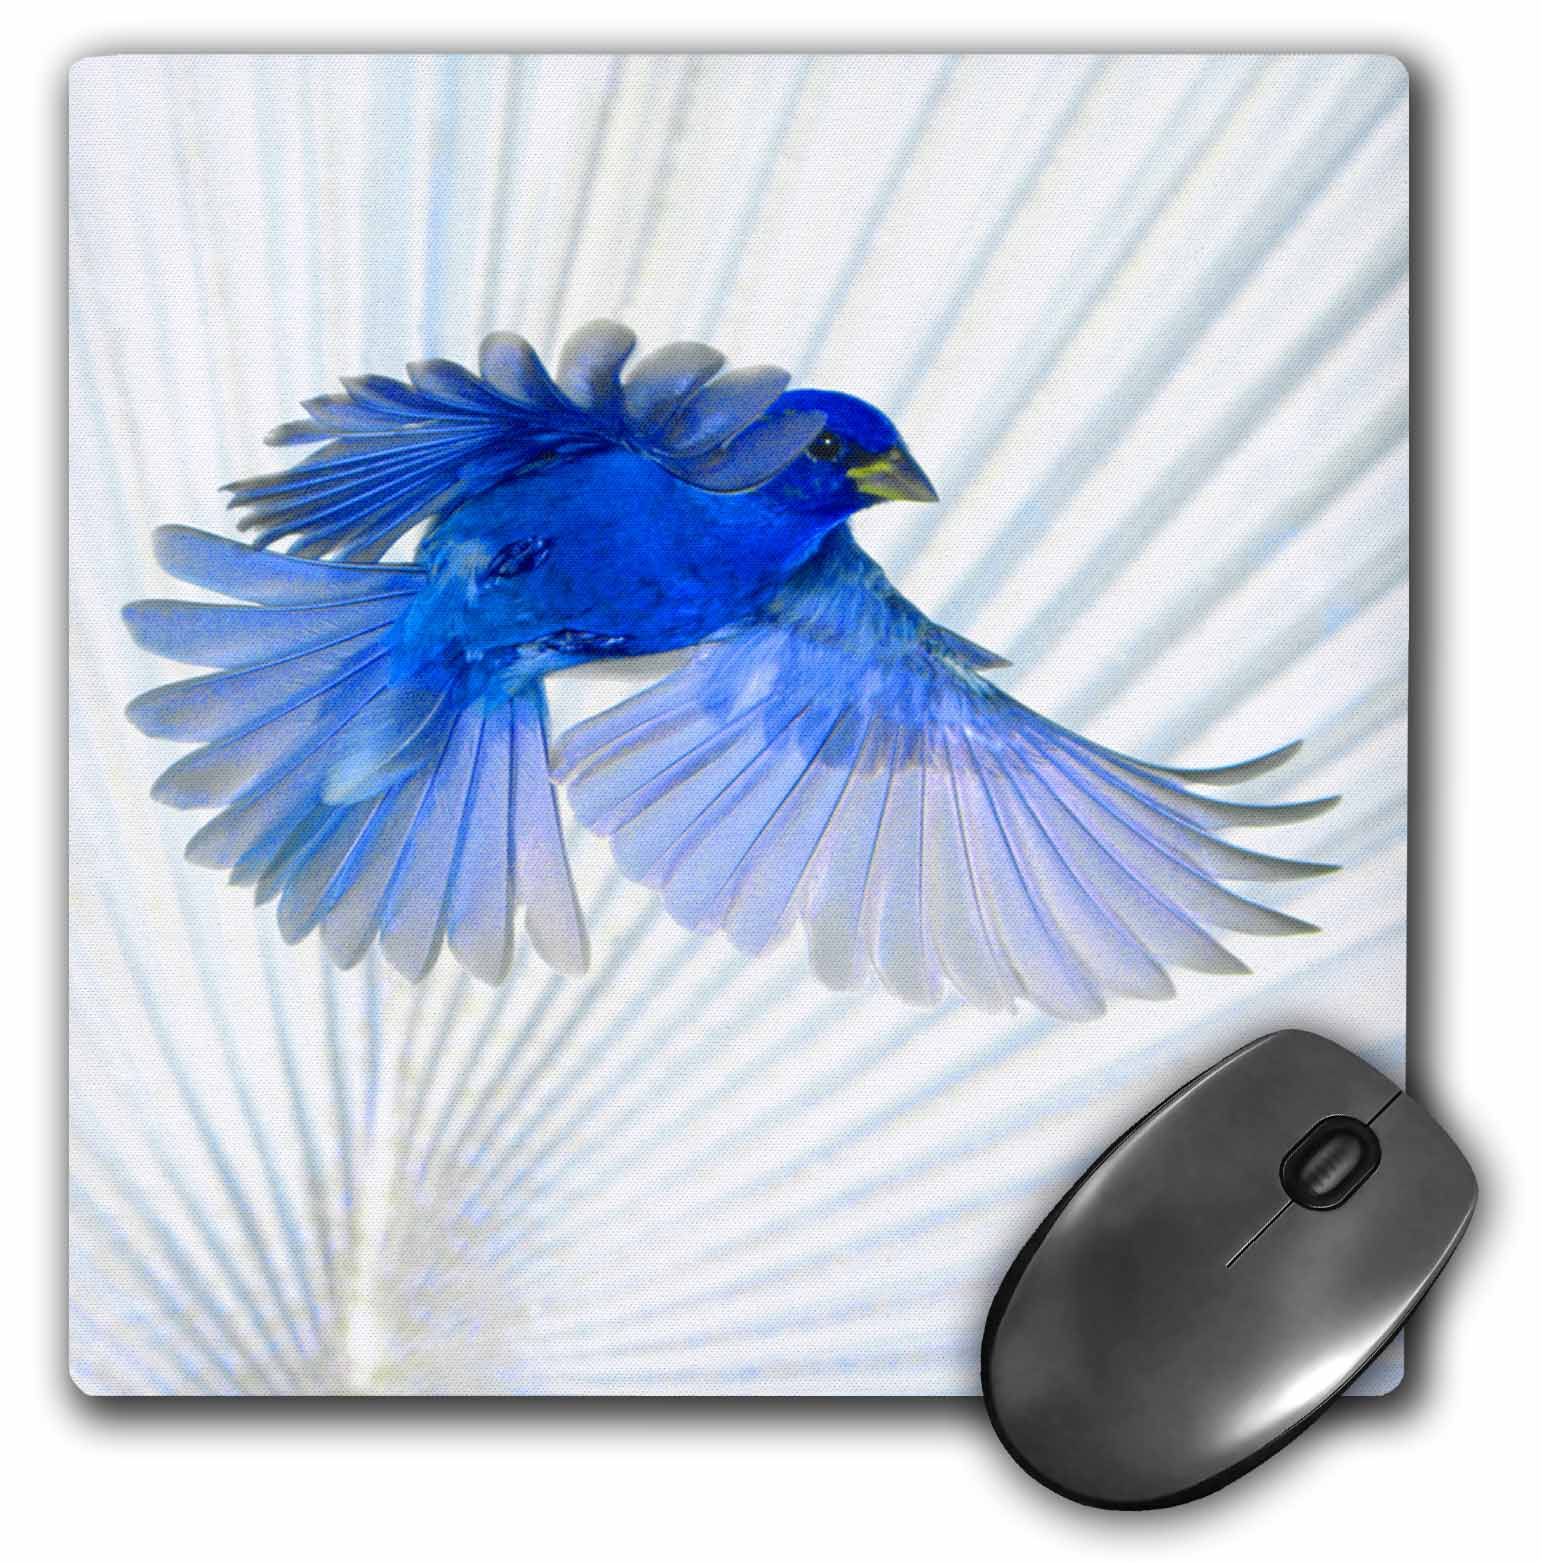 3dRose Florida, Immokalee, Indigo Bunting bird - US10 BFR0117 - Bernard Friel, Mouse Pad, 8 by 8 inches